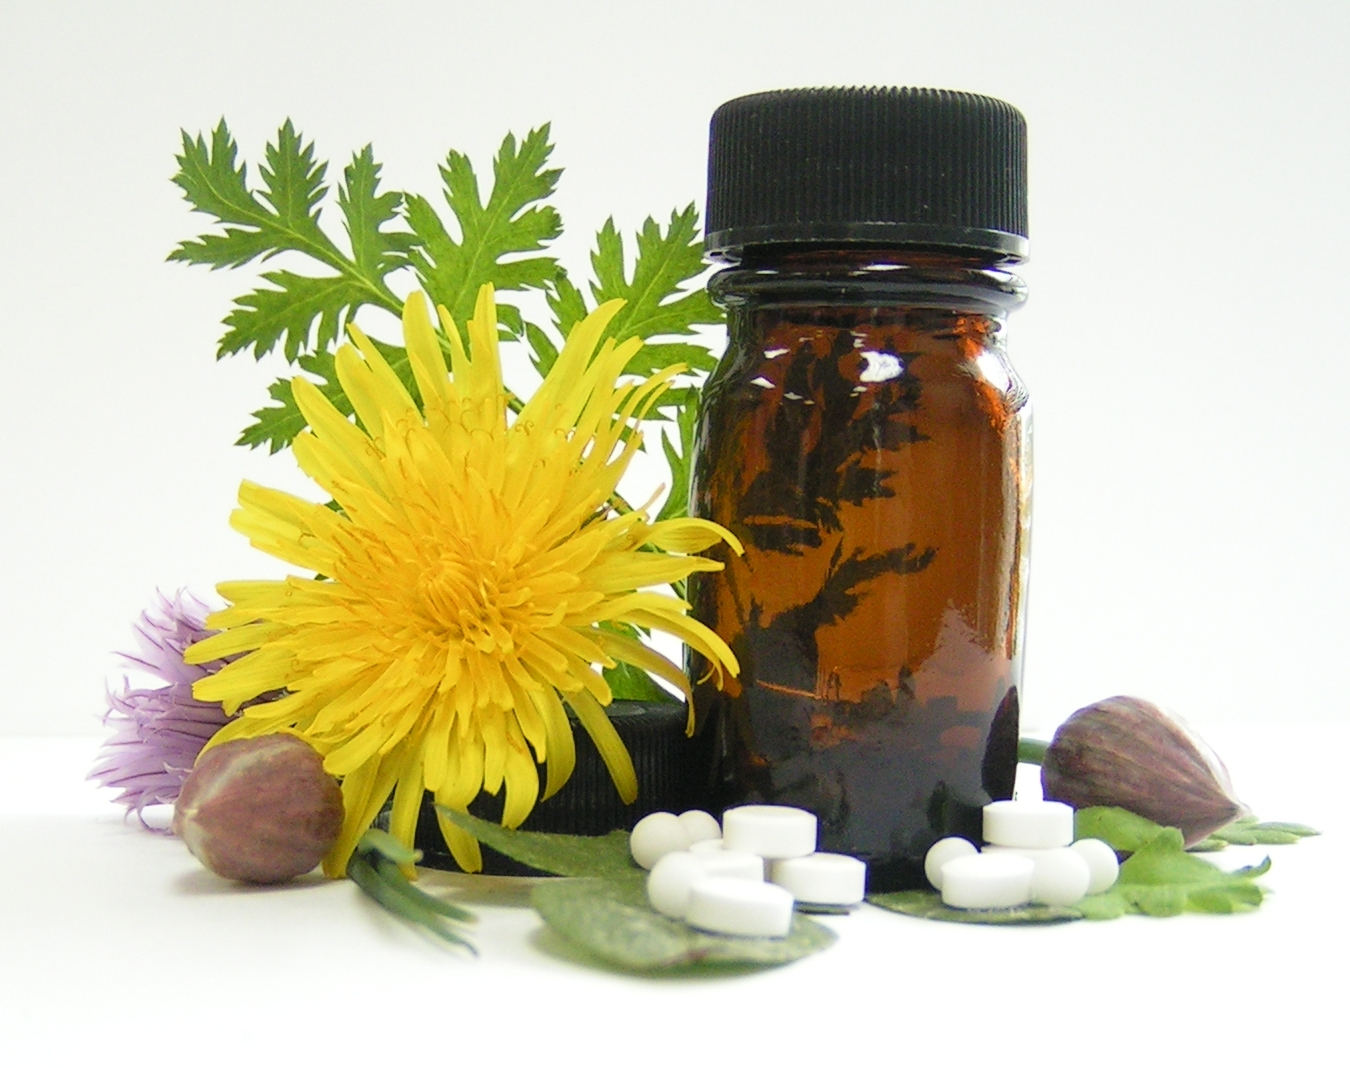 dandelion flower, garlic, echinacea flower, and natural tinture for colds and flu